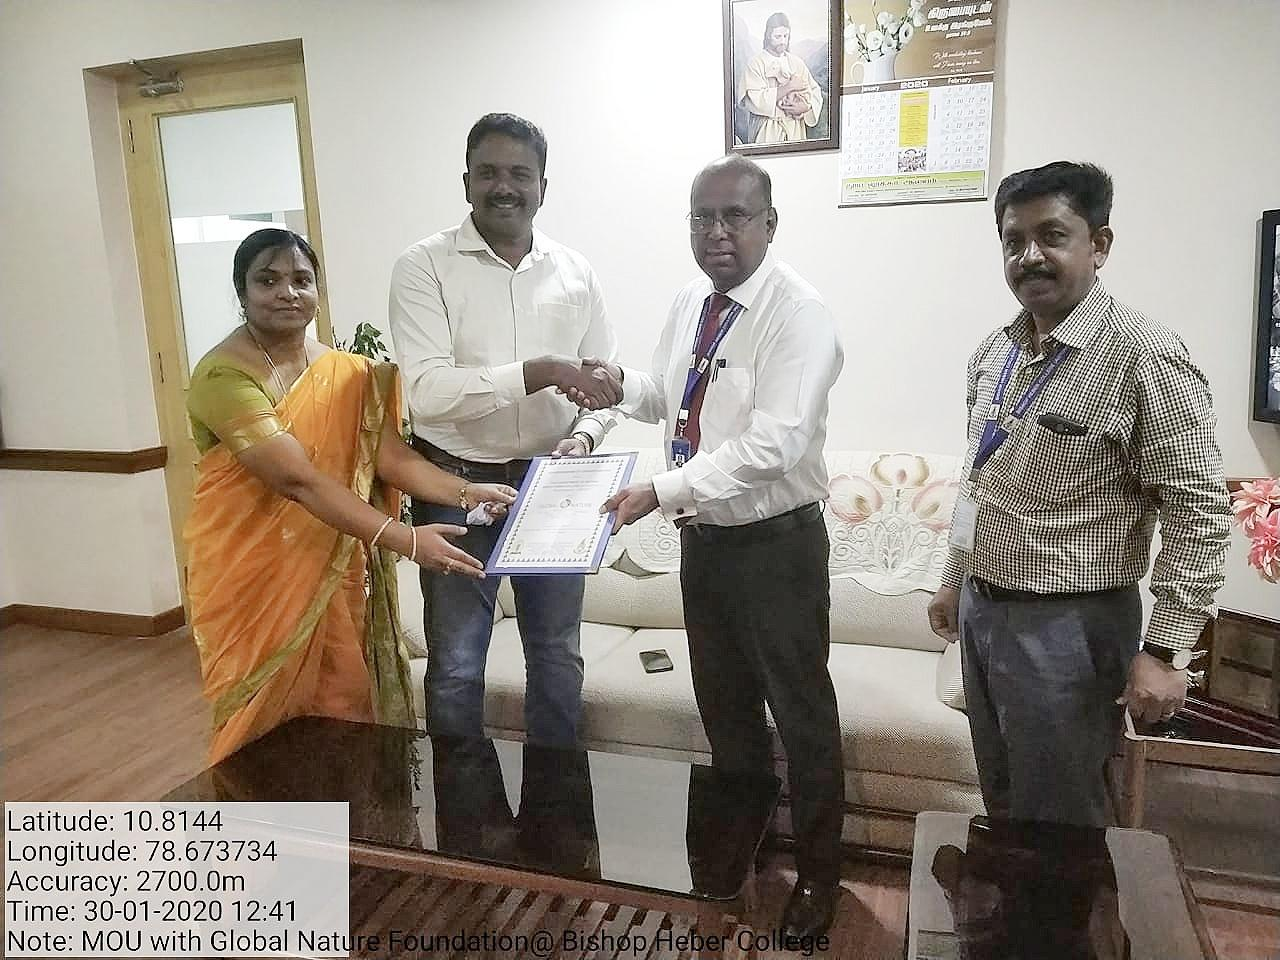 The GNF signed the MOU with the Botany Department of Bishop Heber College, Trichy.